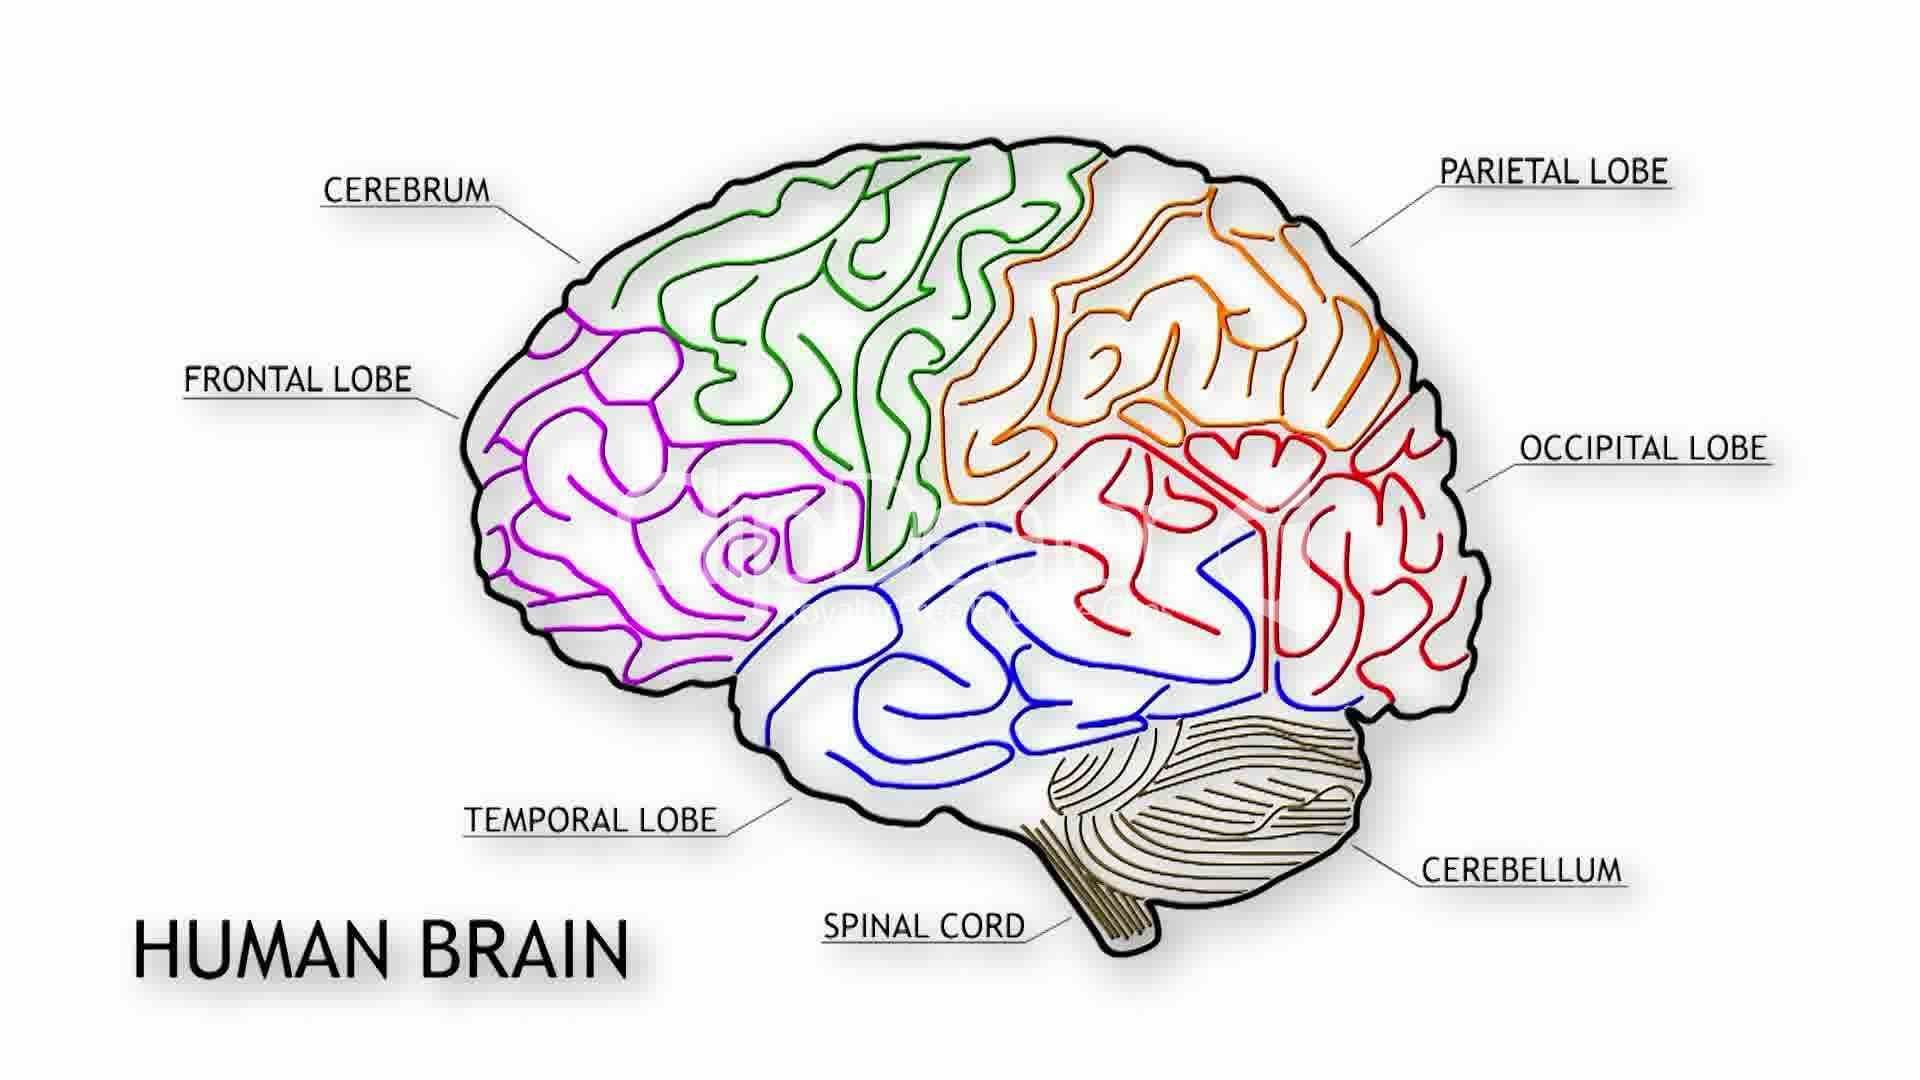 Simple diagram showing the lobes of the human brain, the ...